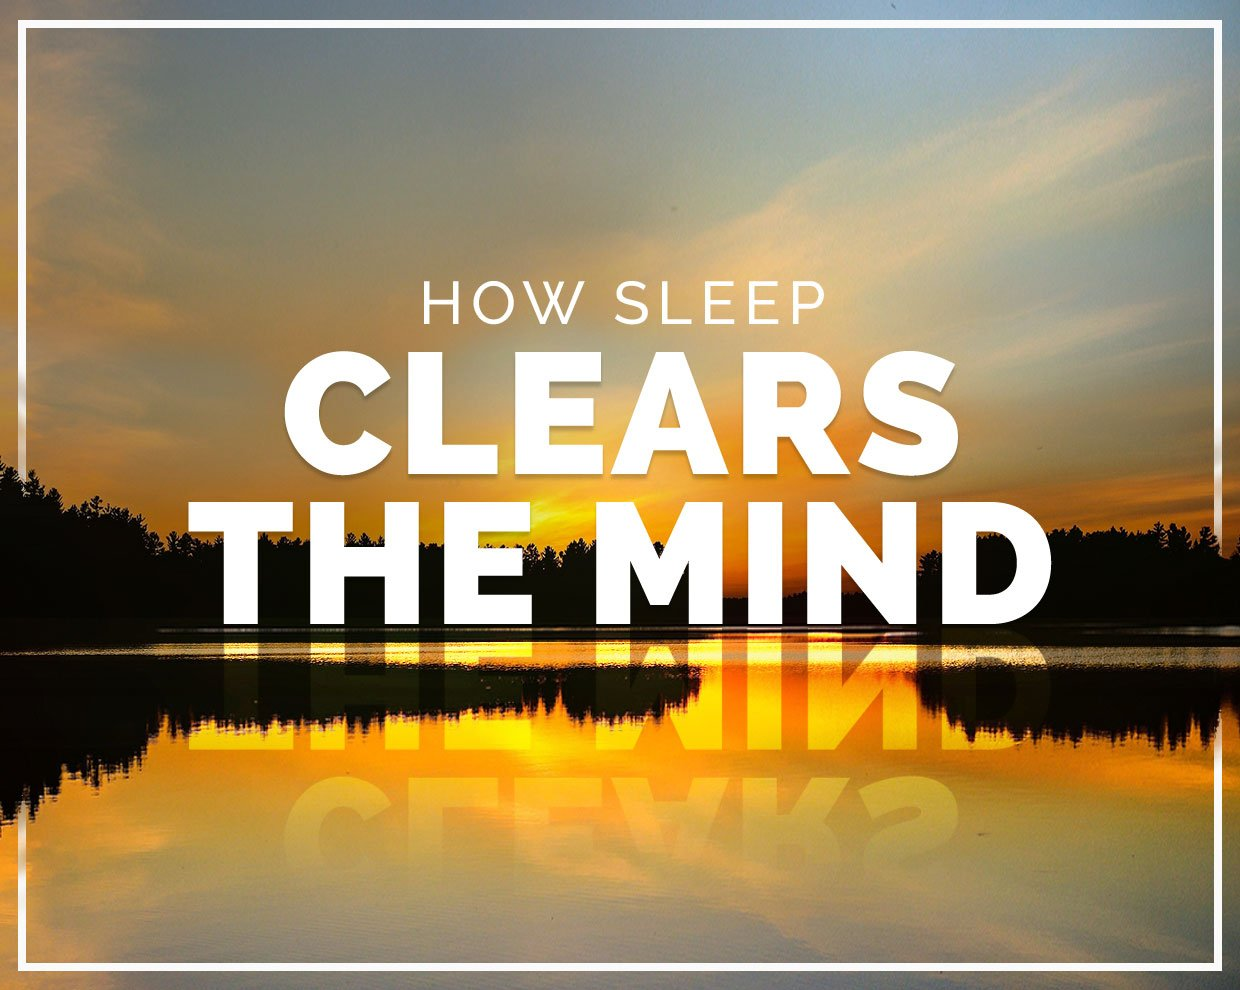 How sleep clears the mind